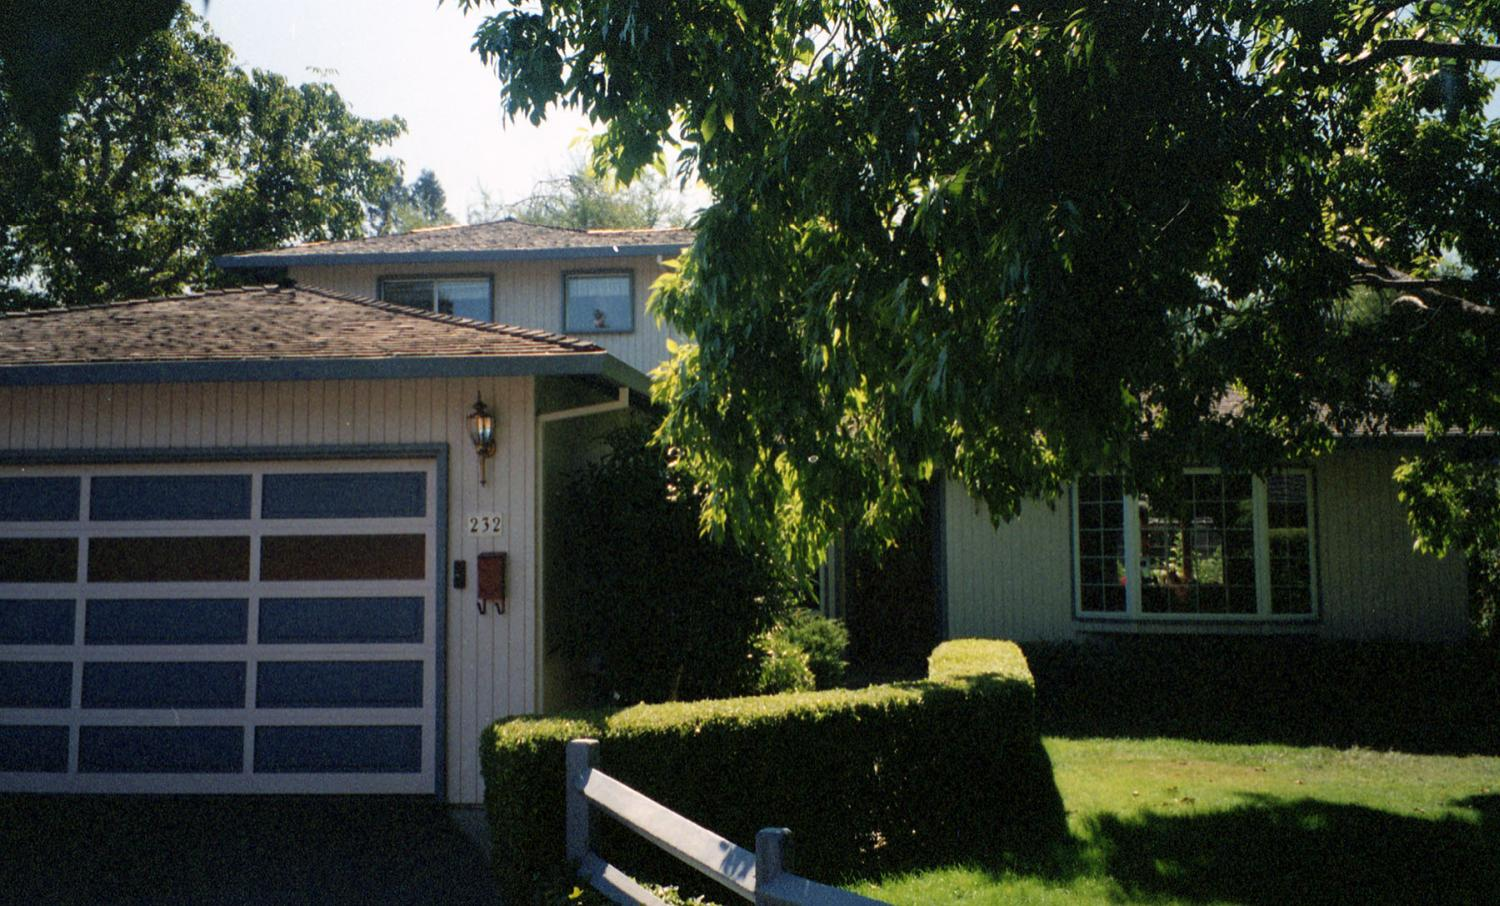 Susan_s Garage — Google_s first home